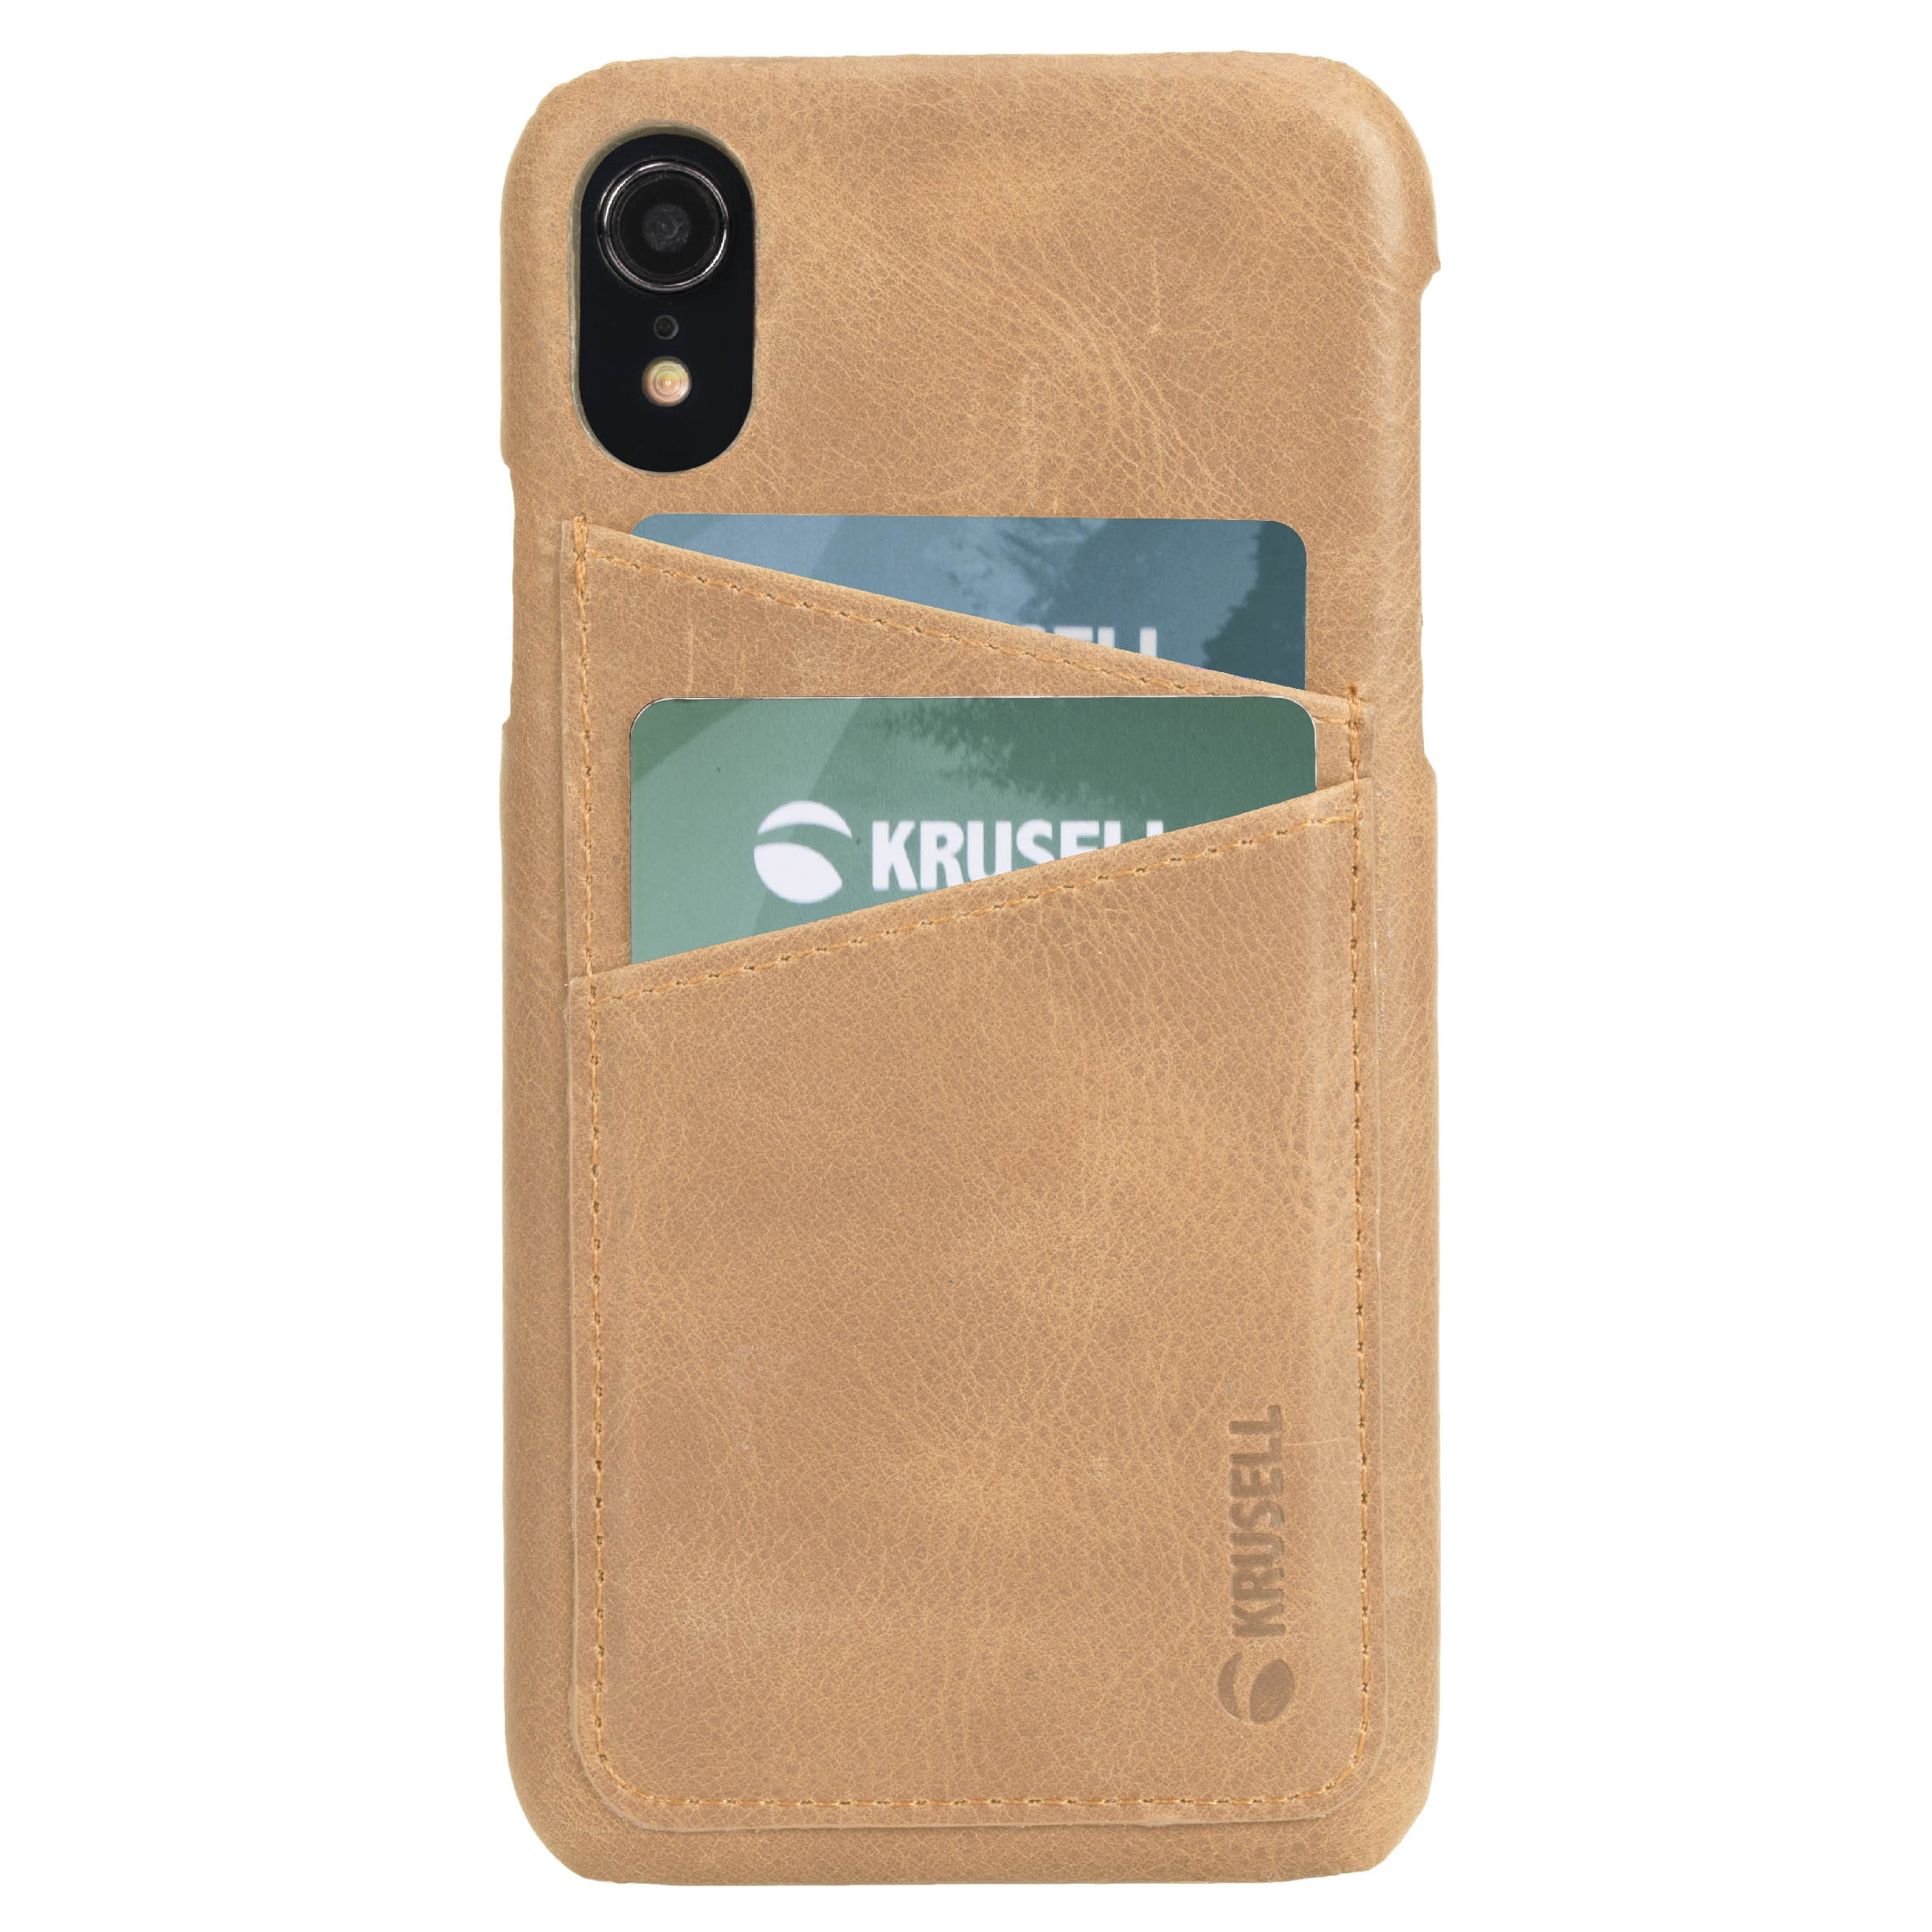 Capac protectie spate Krusell Sunne Cover 2 Card pentru Apple iPhone XR 6.1″ Leather Vintage Nude